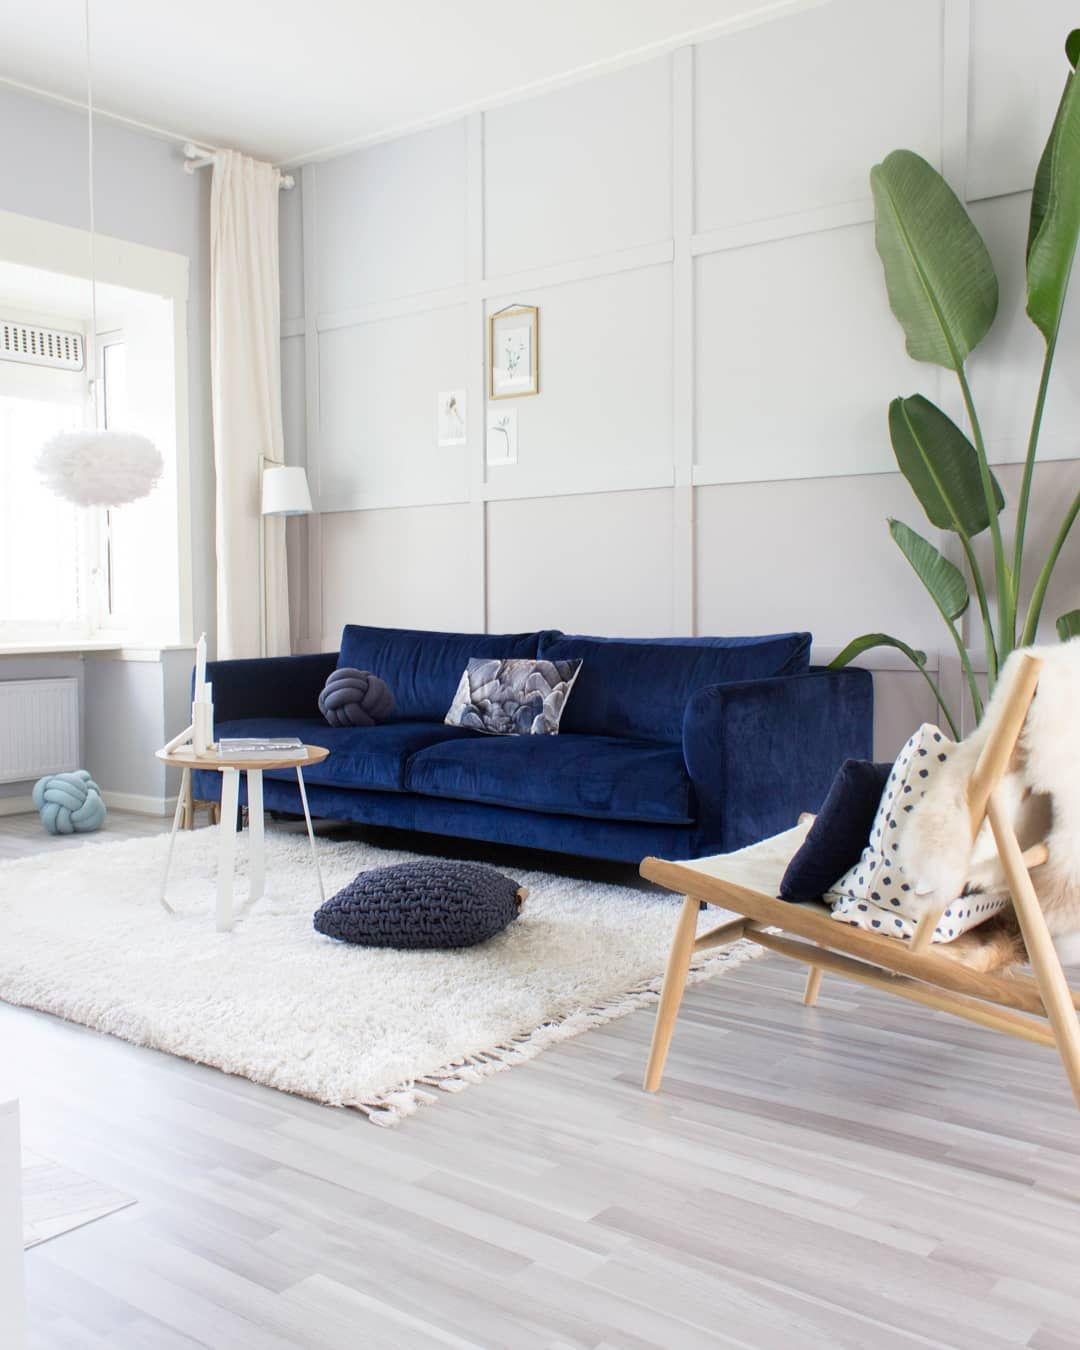 Dark Blue Couch Picture By Juudithhome Blue Sofas Living Room Blue Living Room Decor Blue Couch Living Room